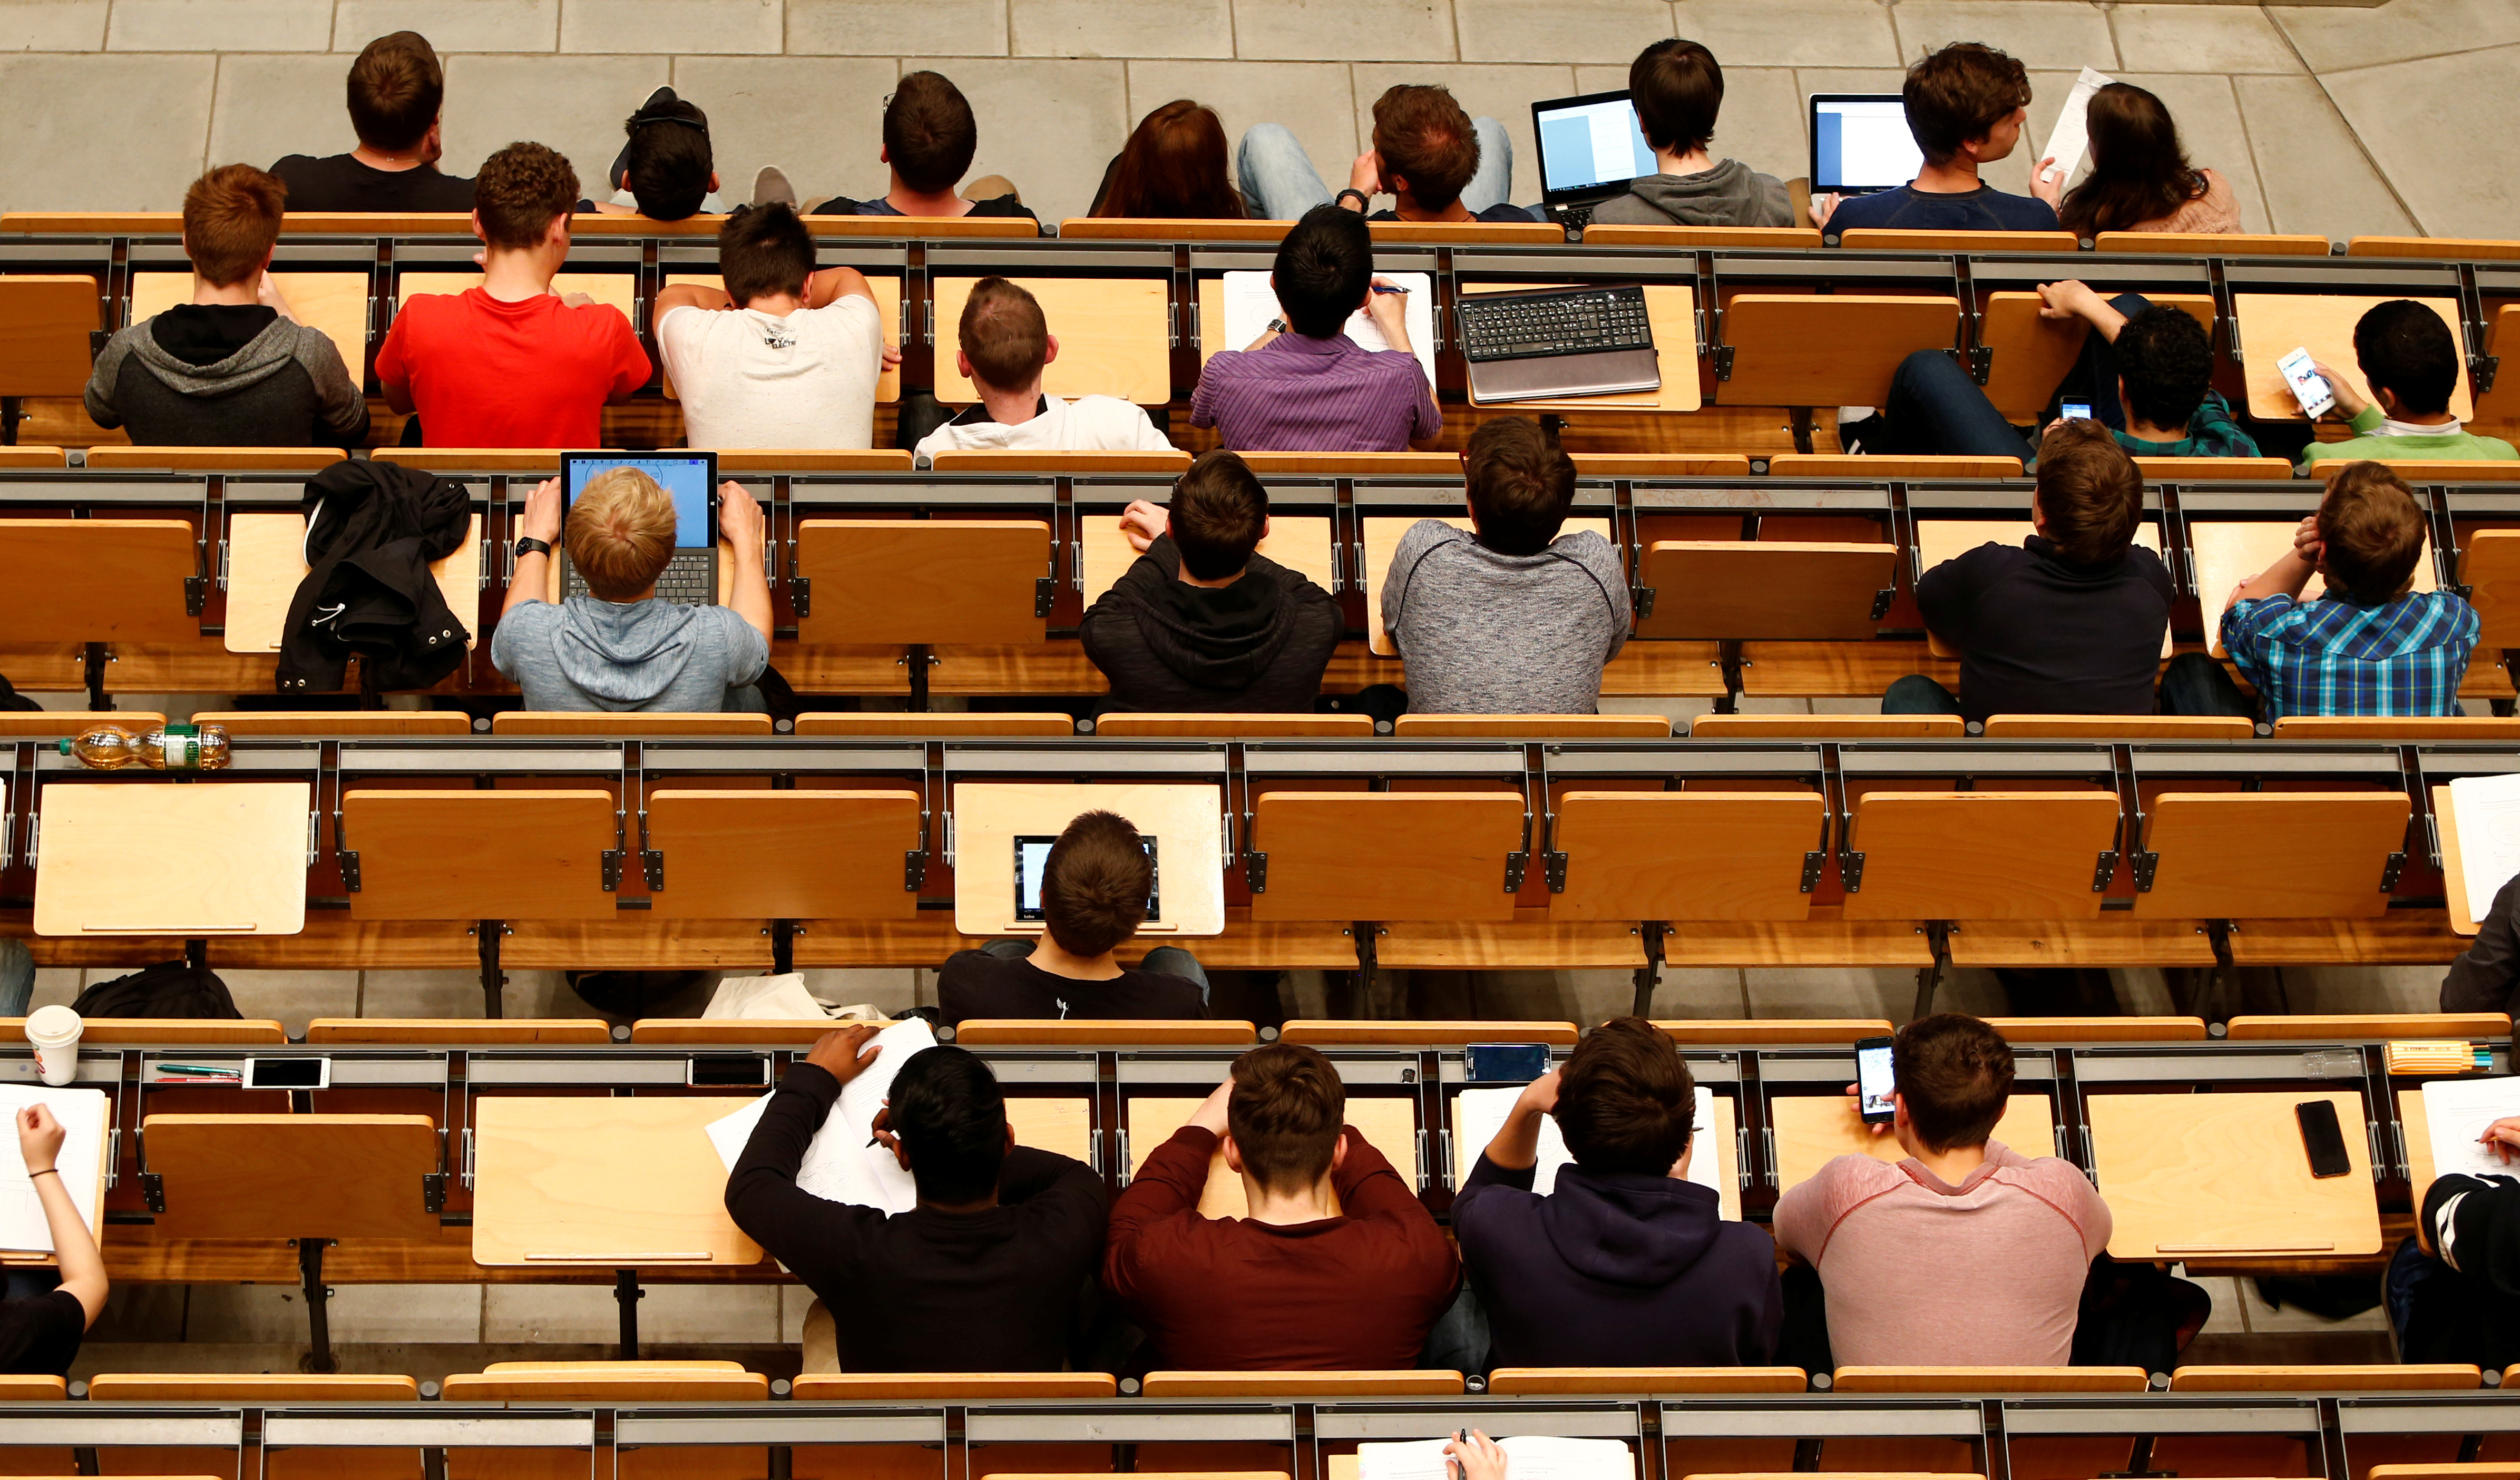 For better learning in college lectures, lay down the laptop